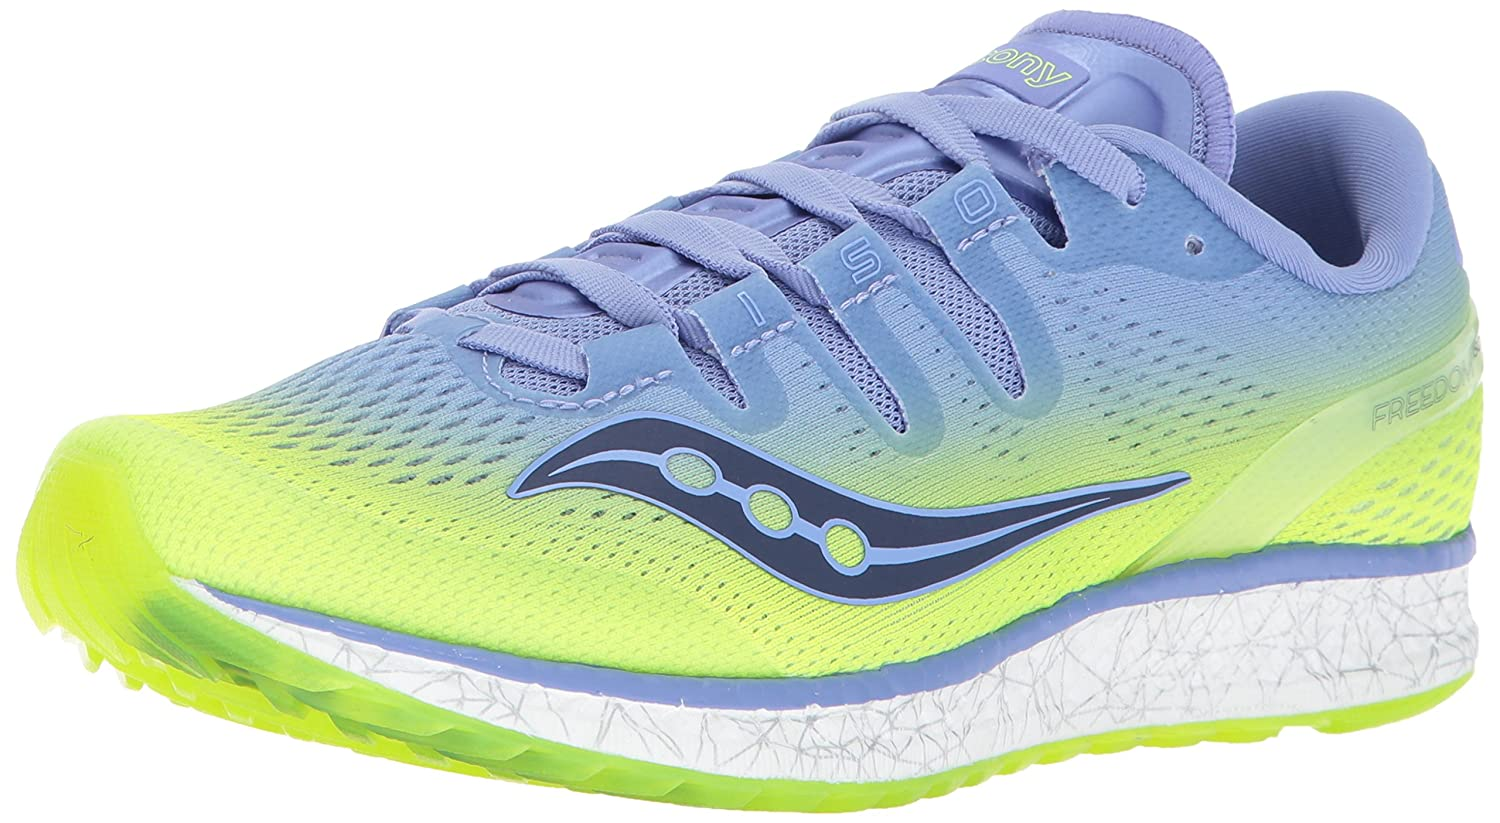 Saucony 10355-3, Zapatillas de Deporte Unisex Adulto 10.5 B(M) US|Citron Purple